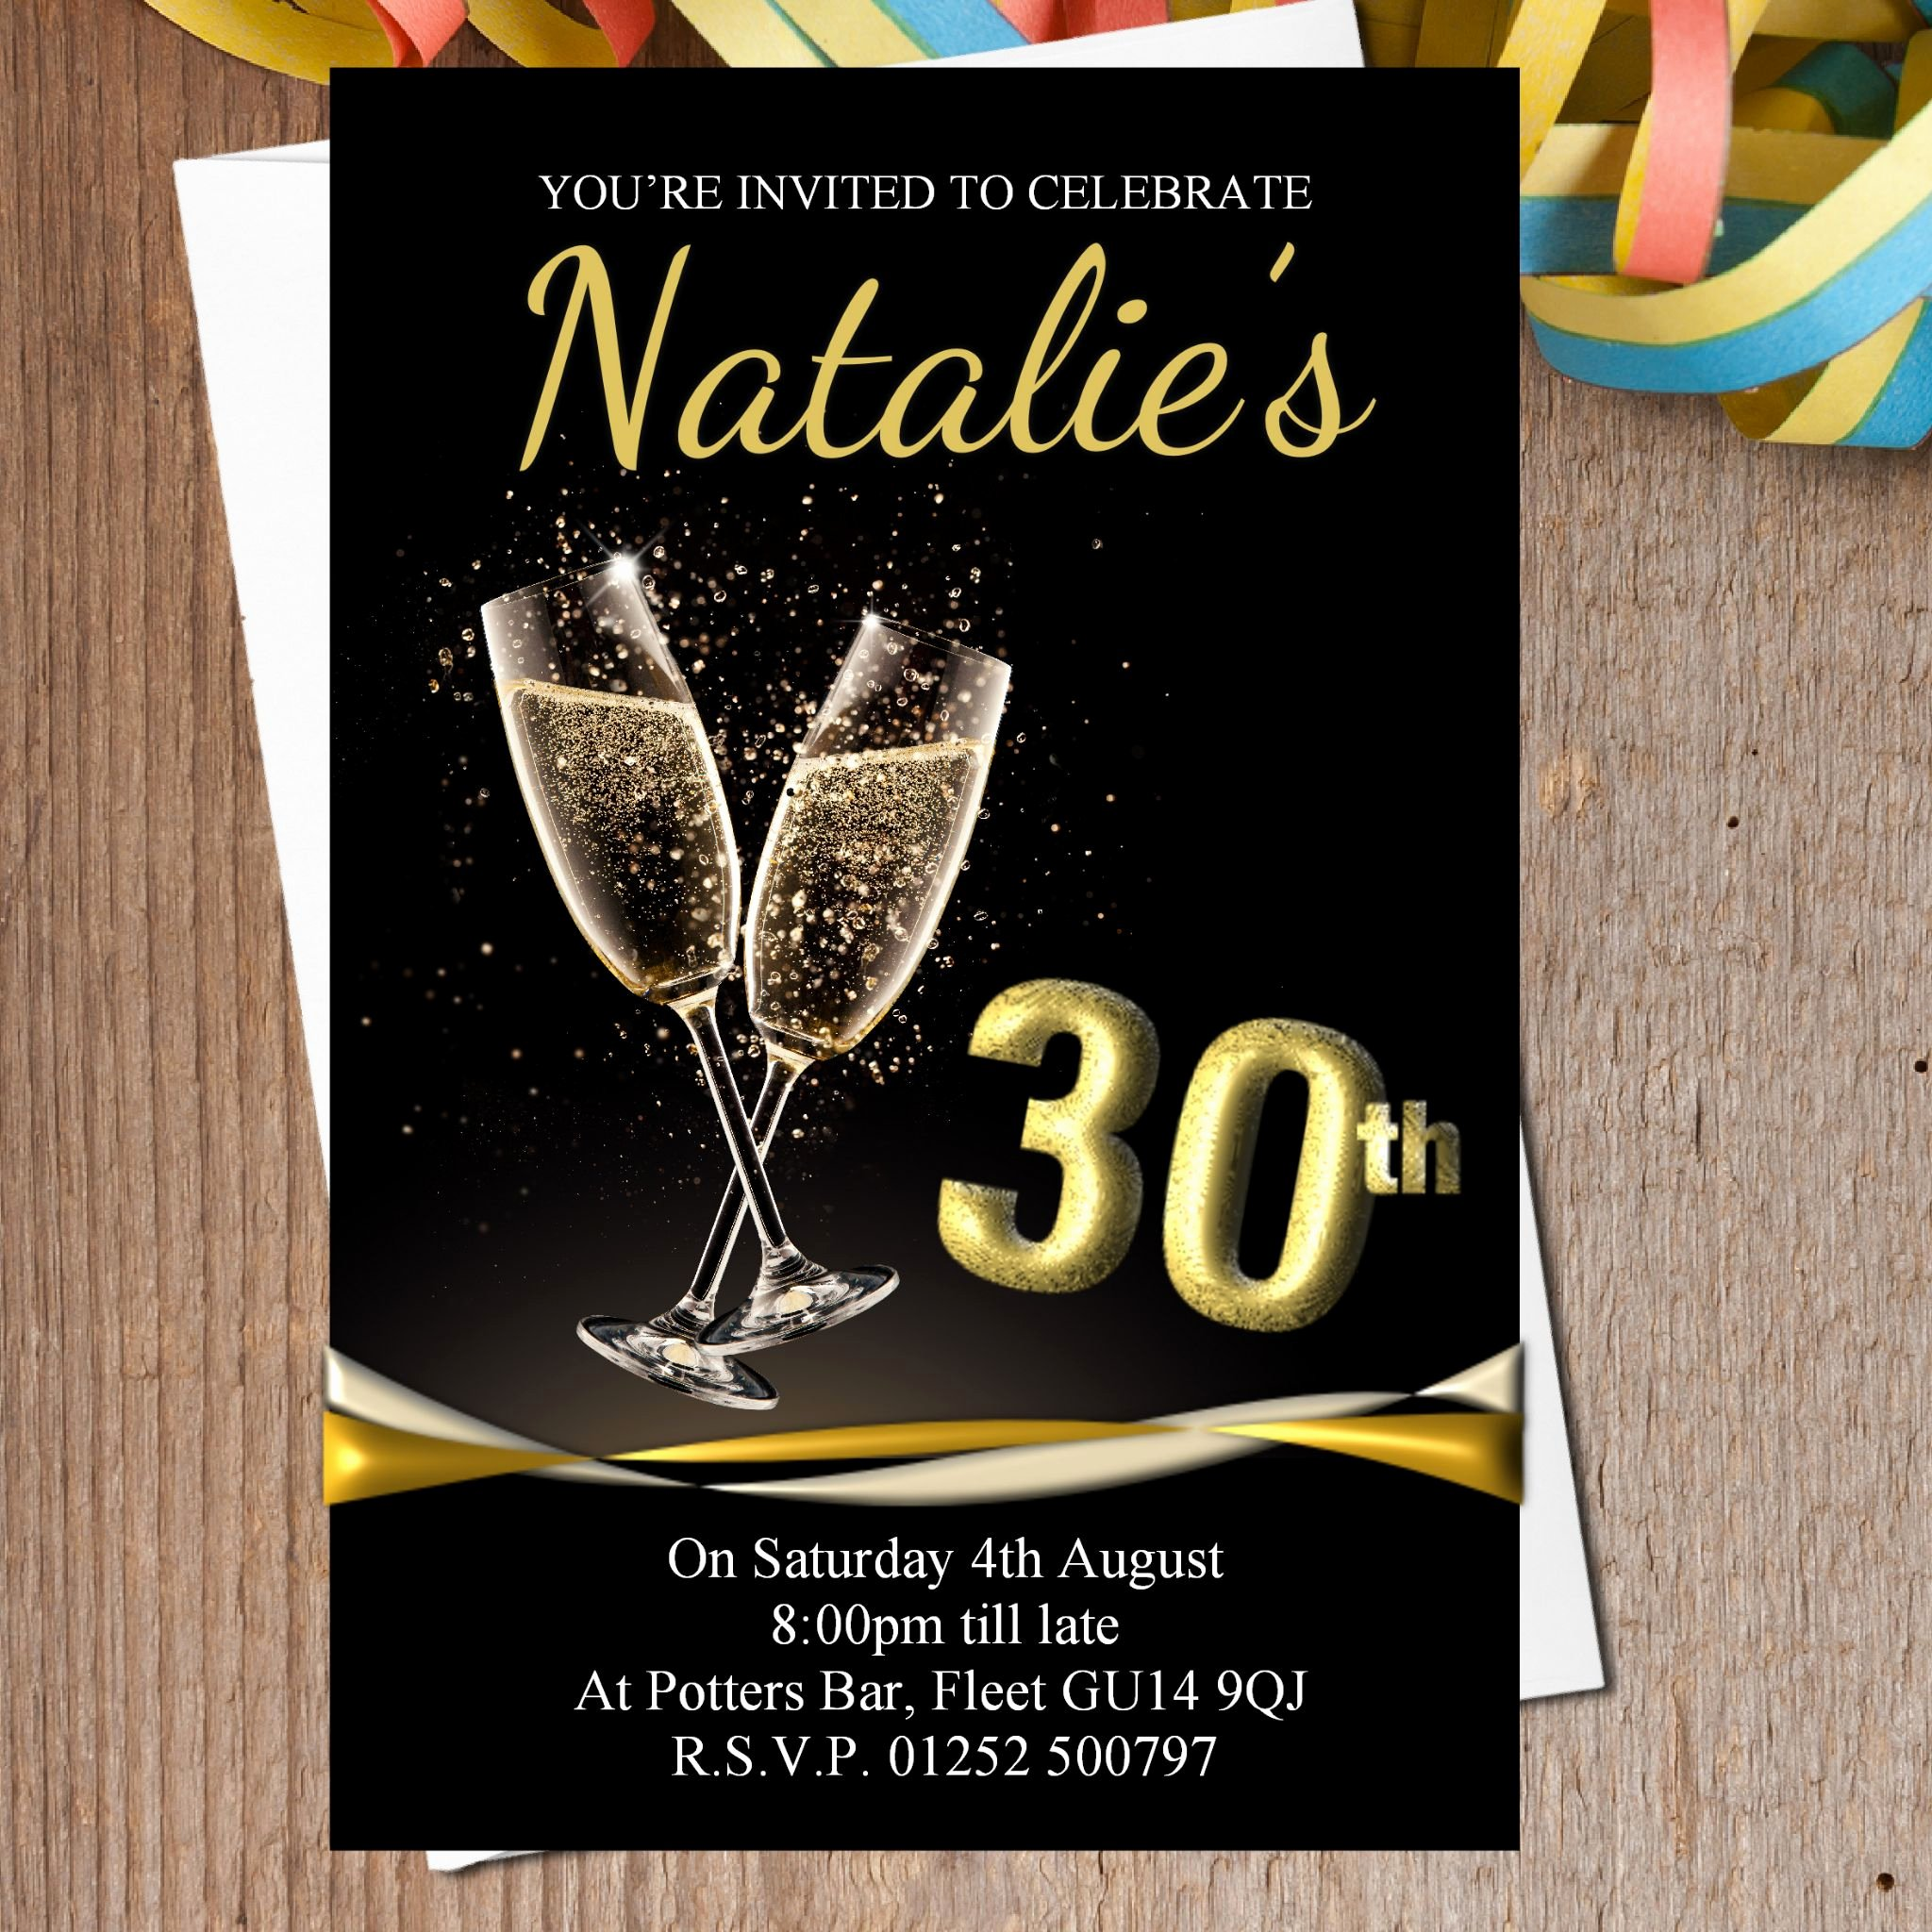 Black and Gold Invitation Template Fwauk